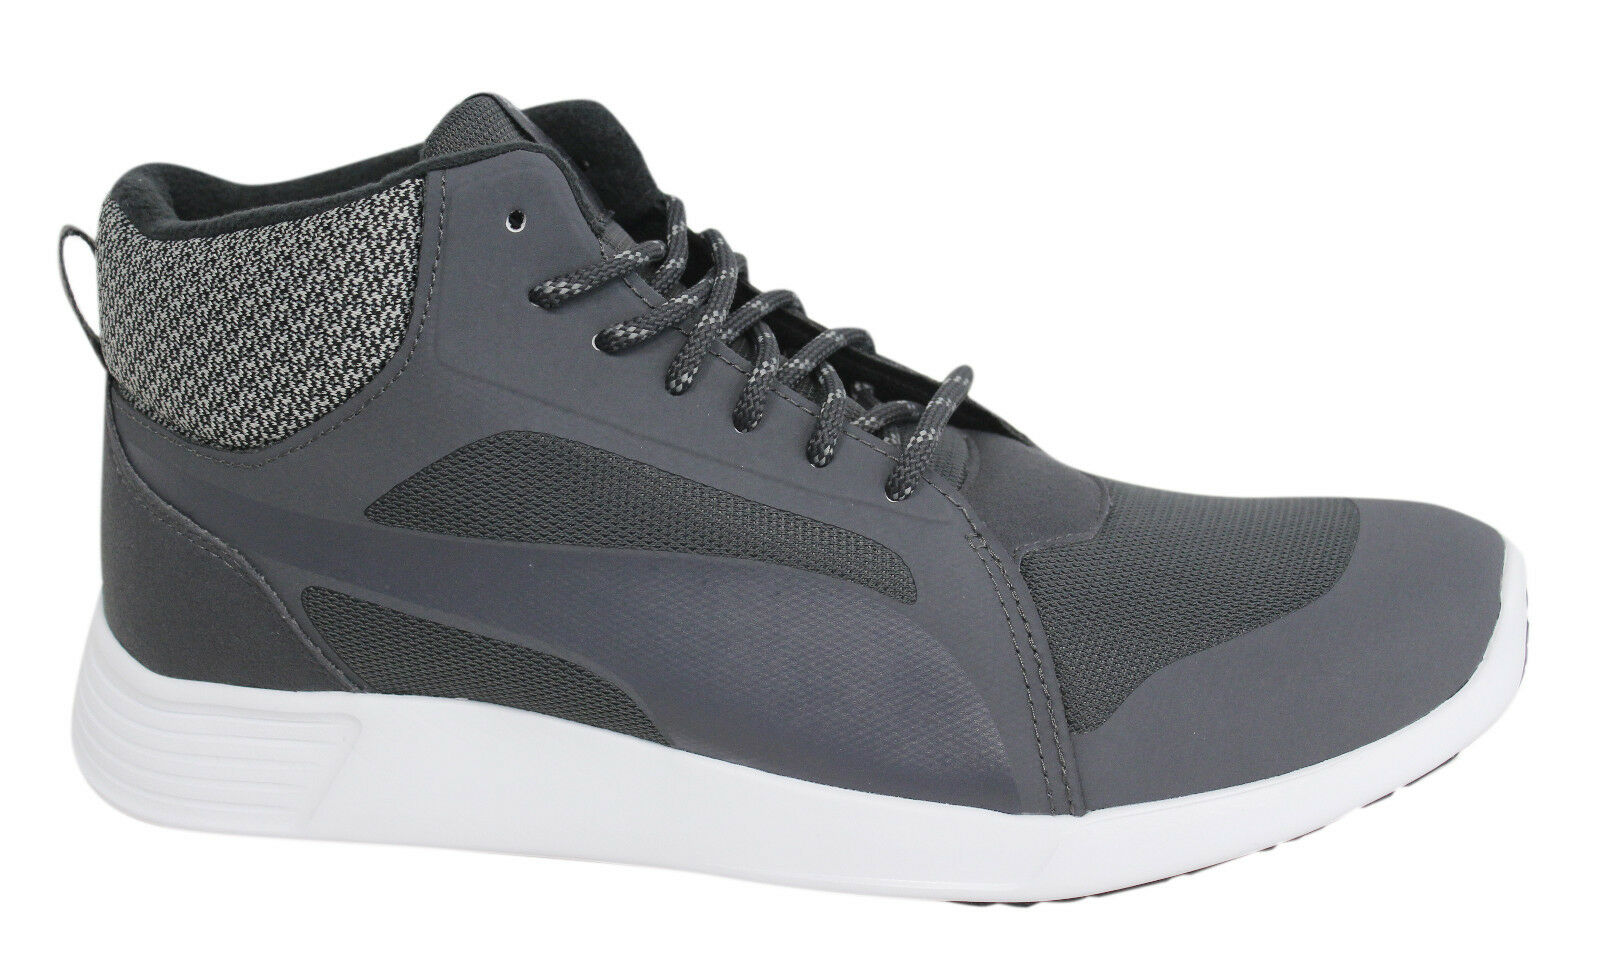 Pima ST Evo Demi Twill Mid Lace Up Grey Textile Mens Trainers 361219 01 M3